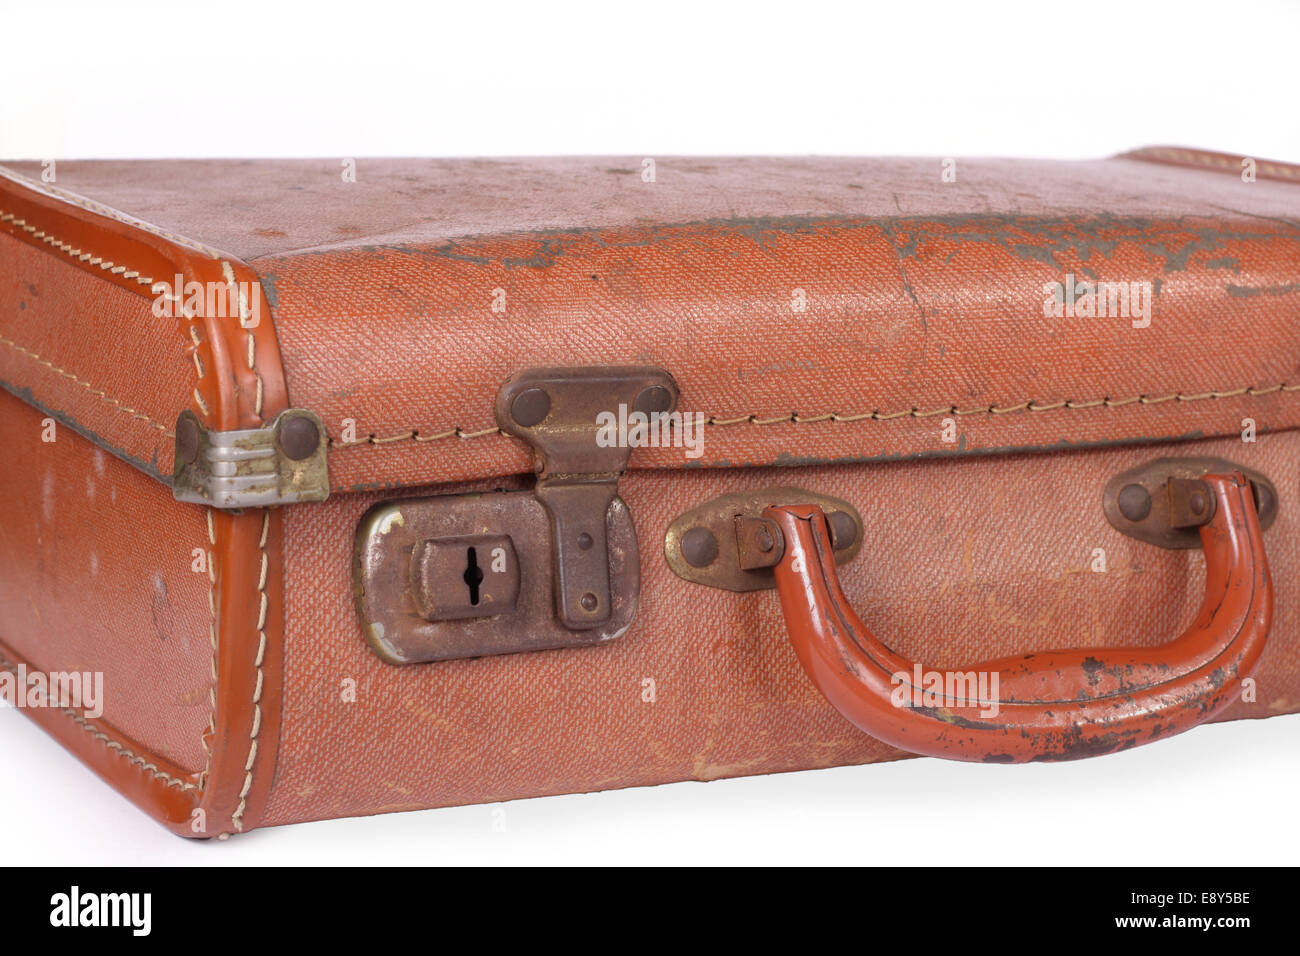 old leather suitcase Stock Photo, Royalty Free Image: 74355666 - Alamy